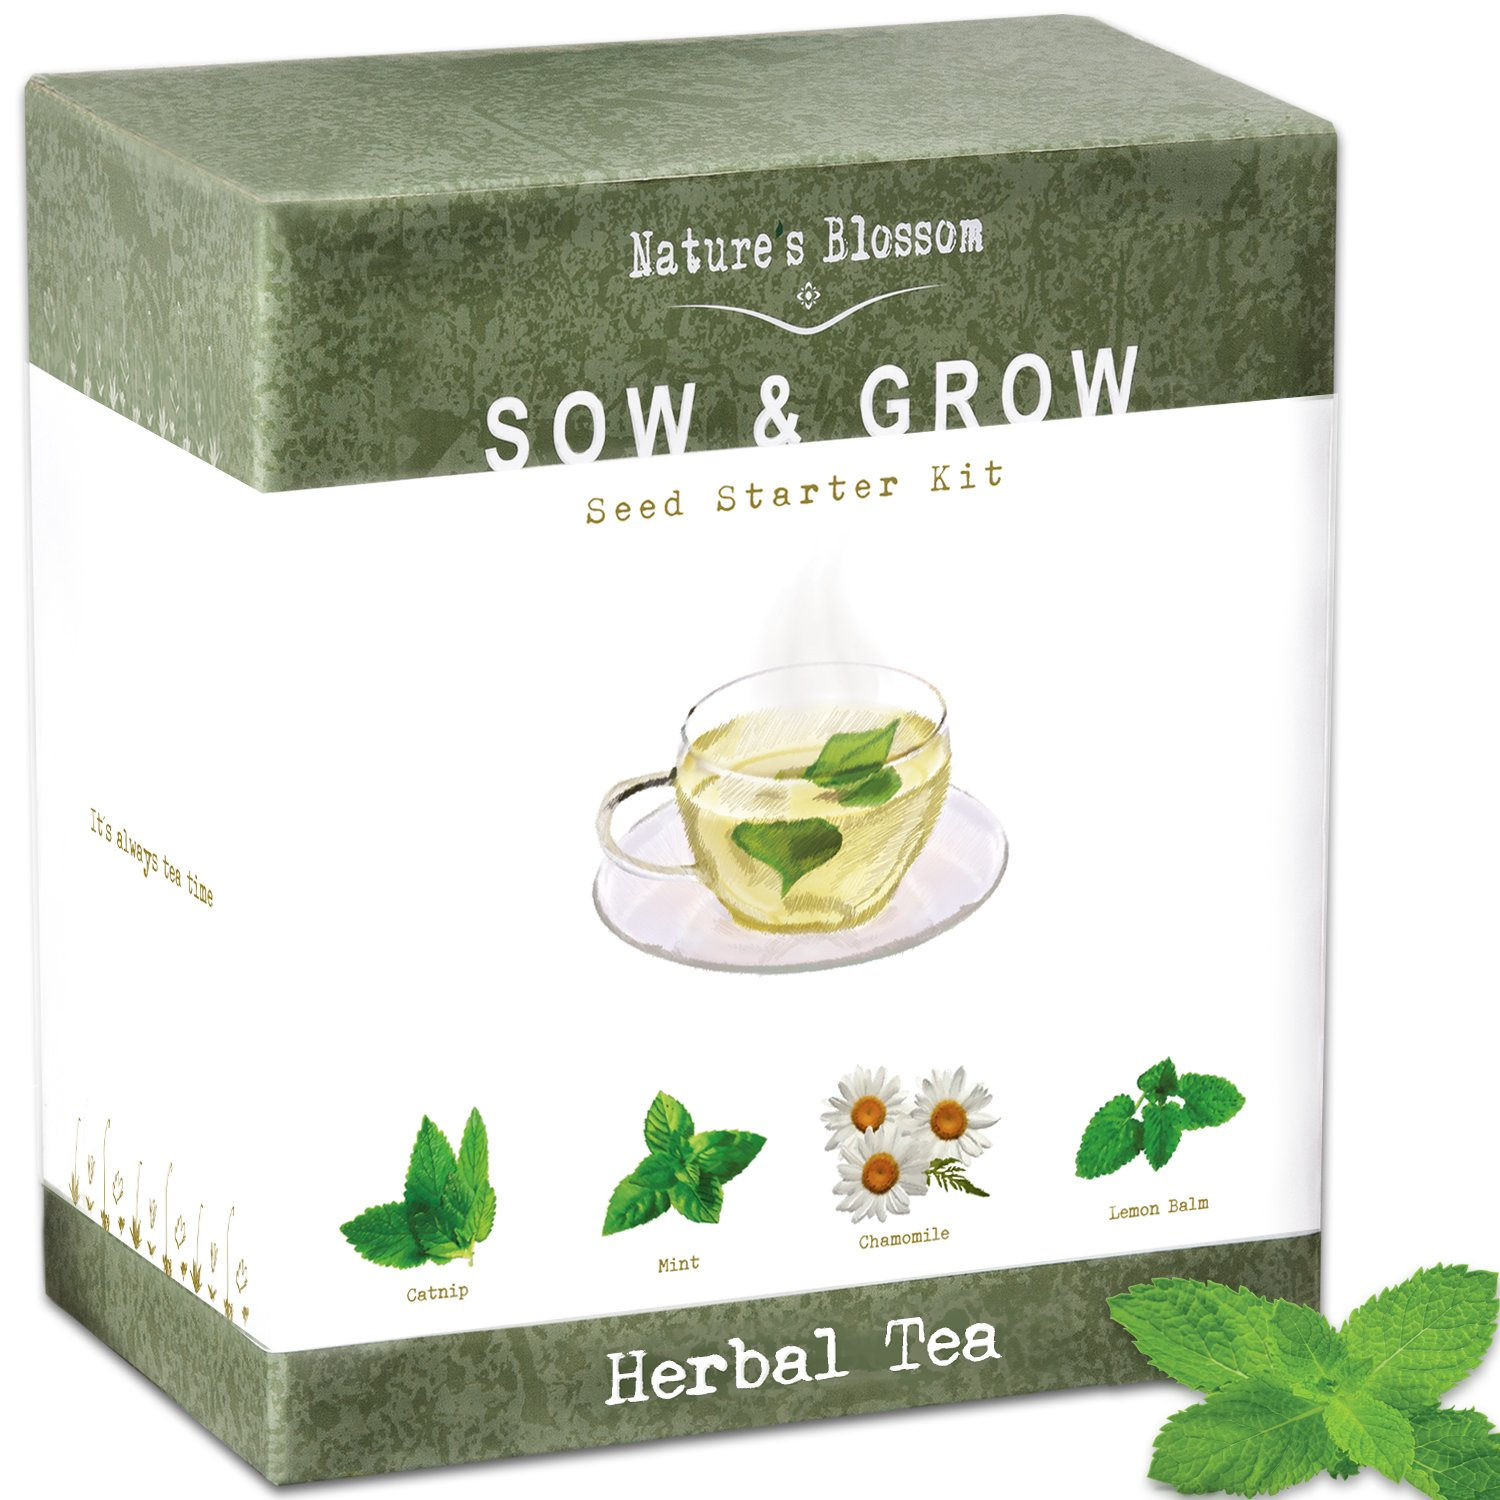 Grow 4 Herbs for Making Herbal Tea - Indoor Garden Seed Starter Kit for Planting Organic Mint Seeds, Catnip Seeds, Lemon Balm and Chamomile. Complete Growing Set for Beginners and Expert Gardeners